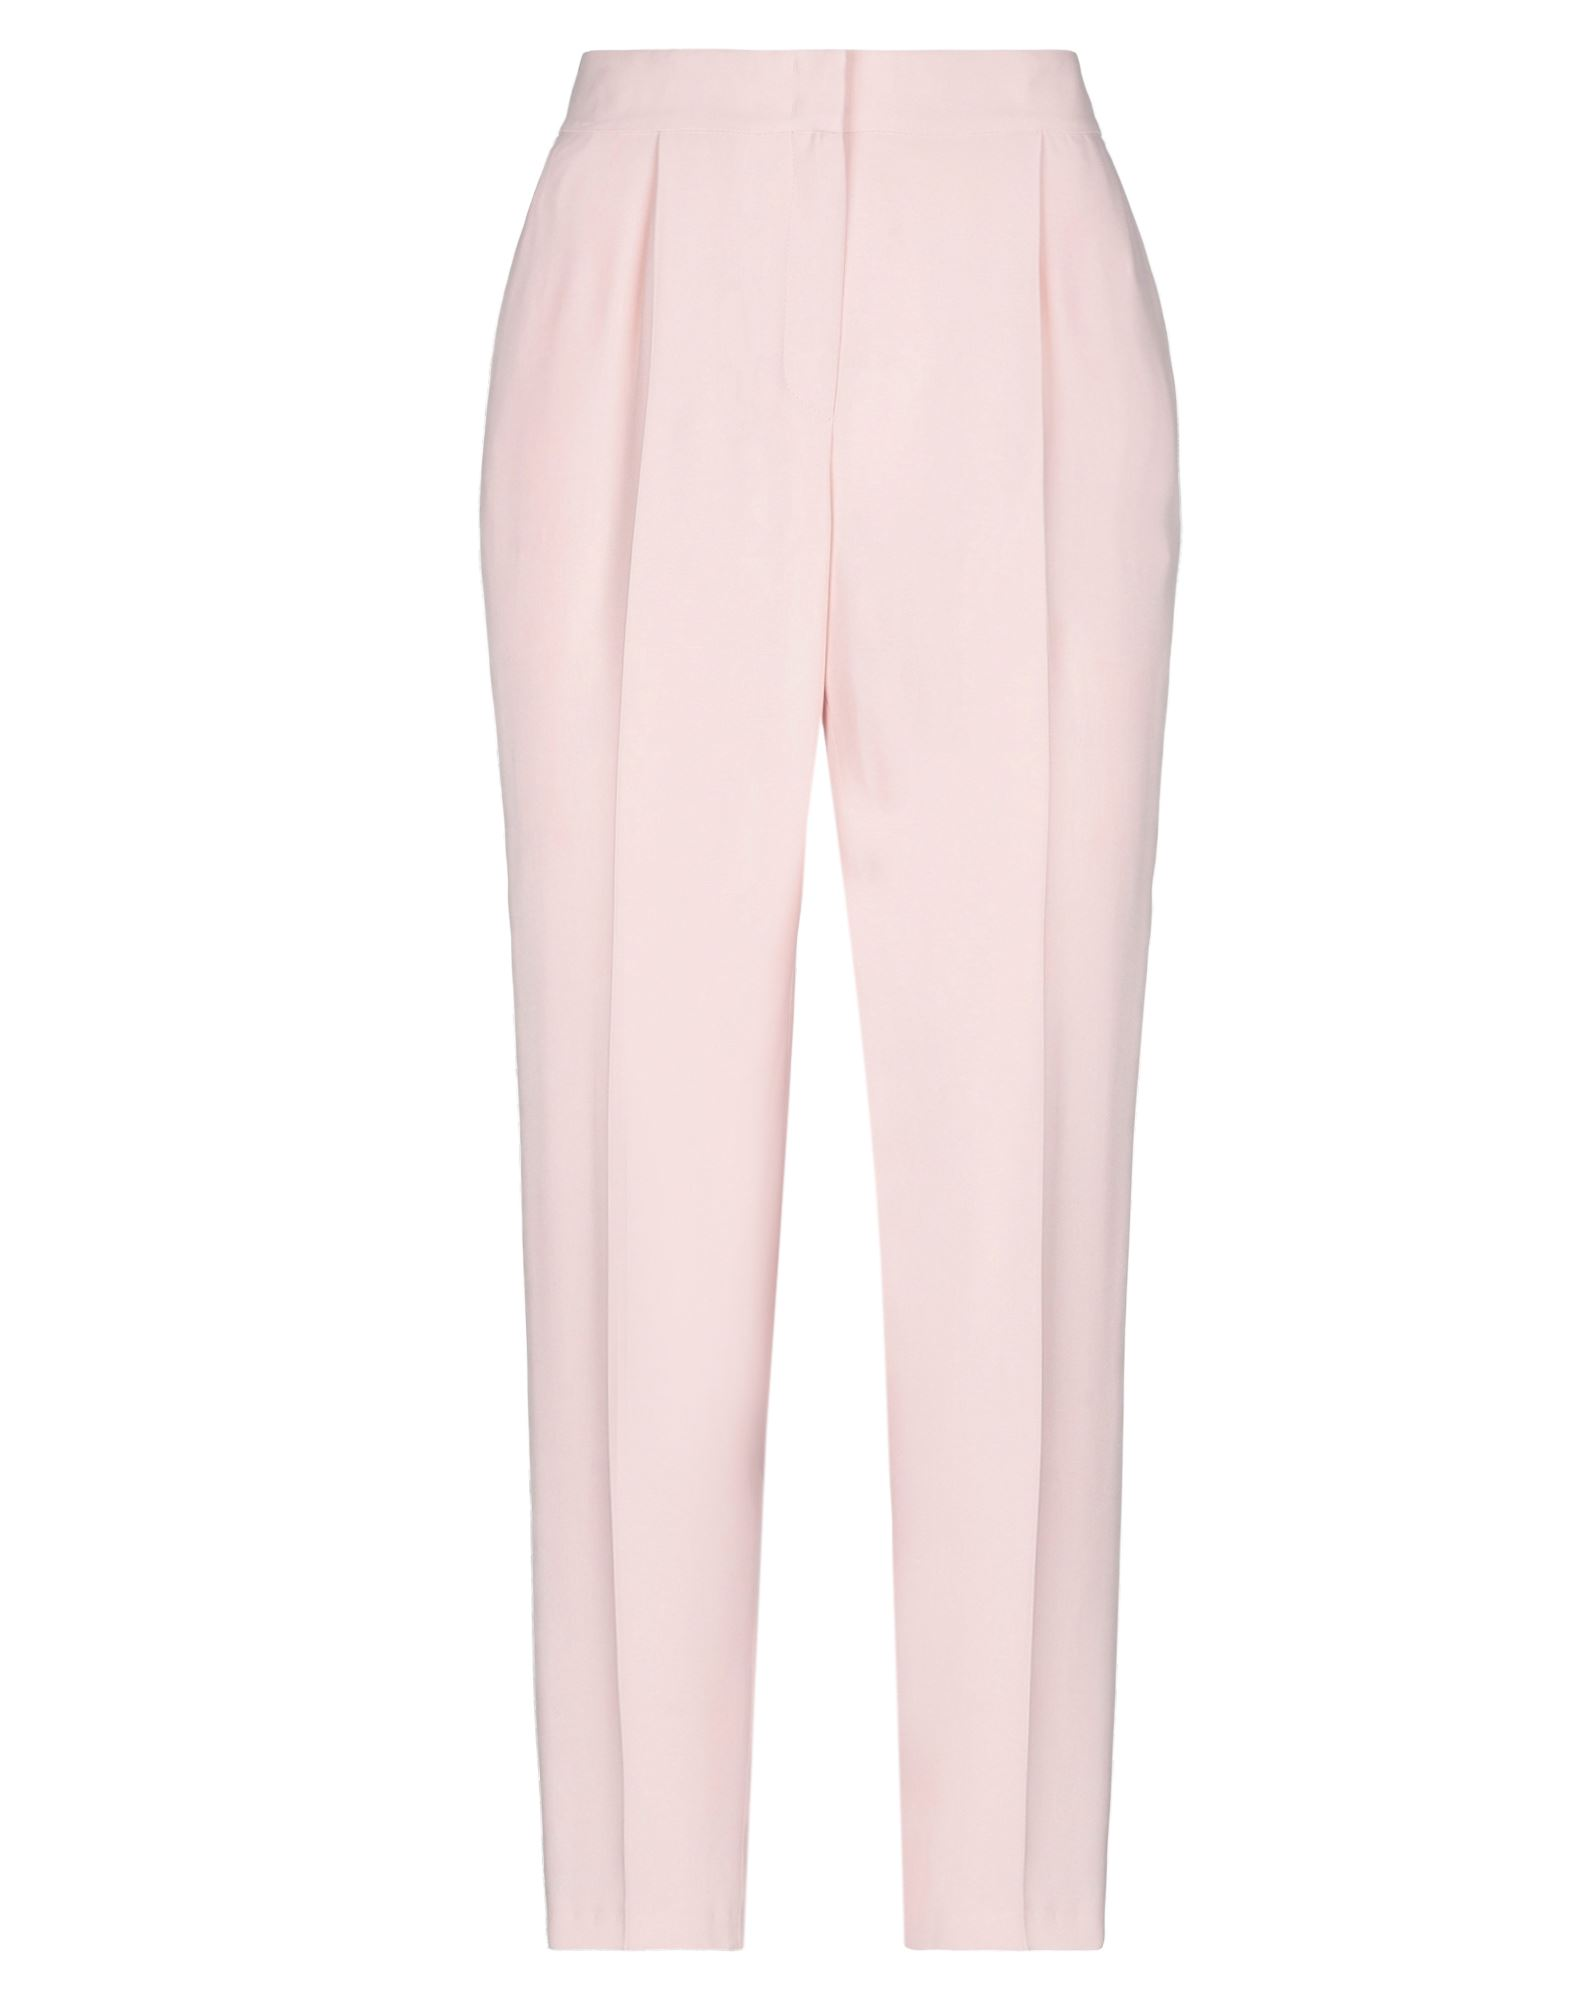 AKRIS PUNTO Casual pants. crepe, basic solid color, no appliqués, high waisted, regular fit, tapered leg, hook-and-bar, zip, multipockets. 52% Viscose, 48% Acetate